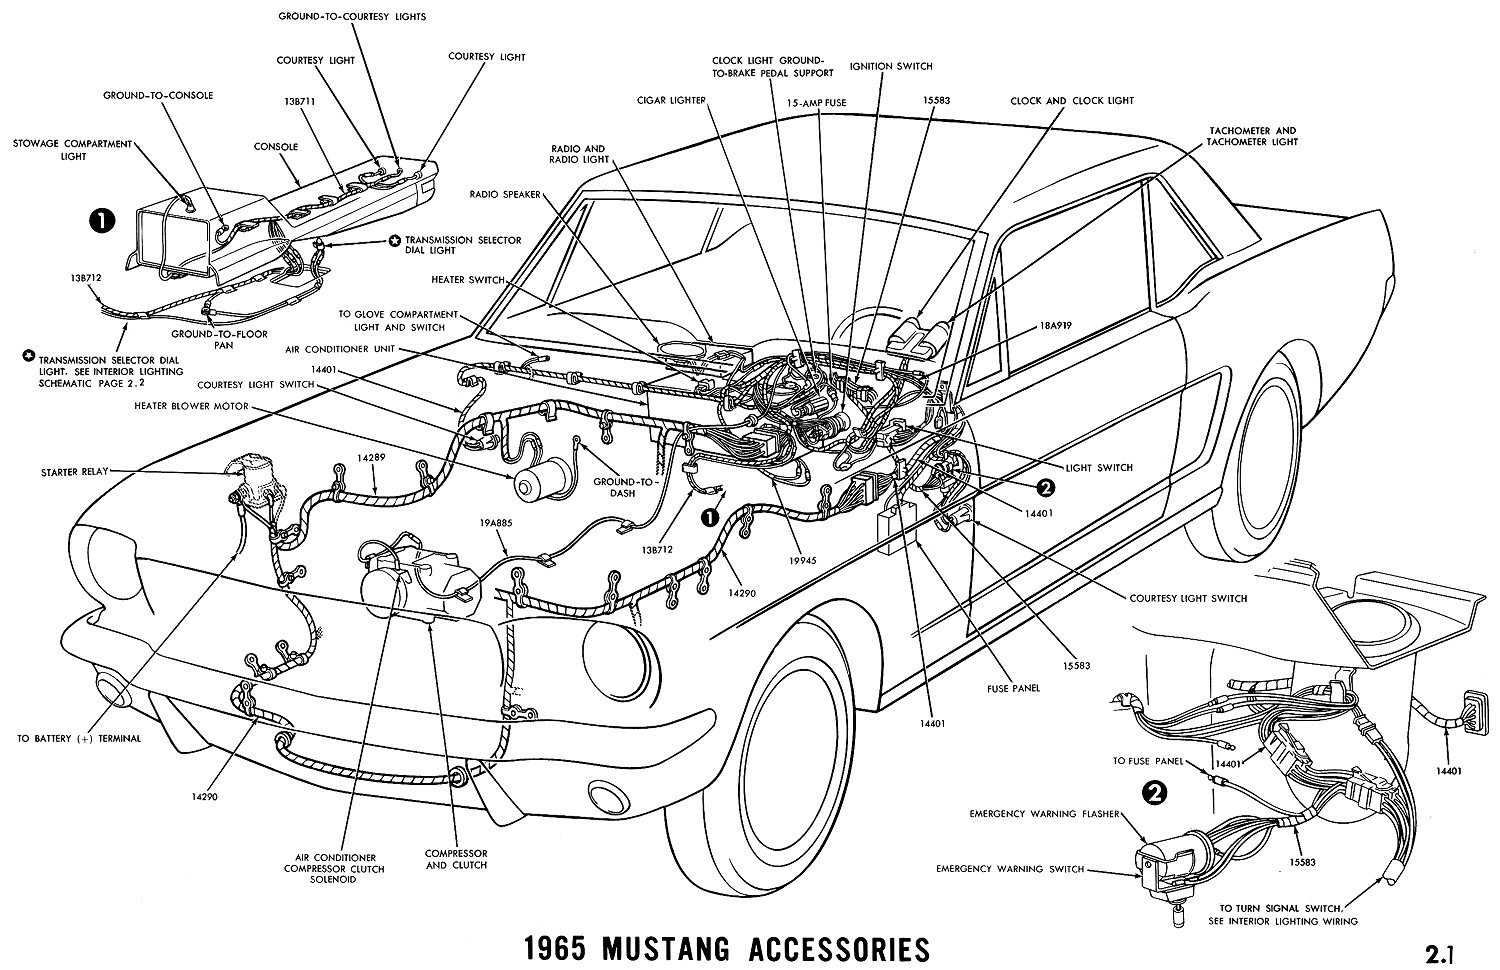 65 mustang wiring diagram manual residential ac thermostat fuse block on a 1965 coupe - ford forum